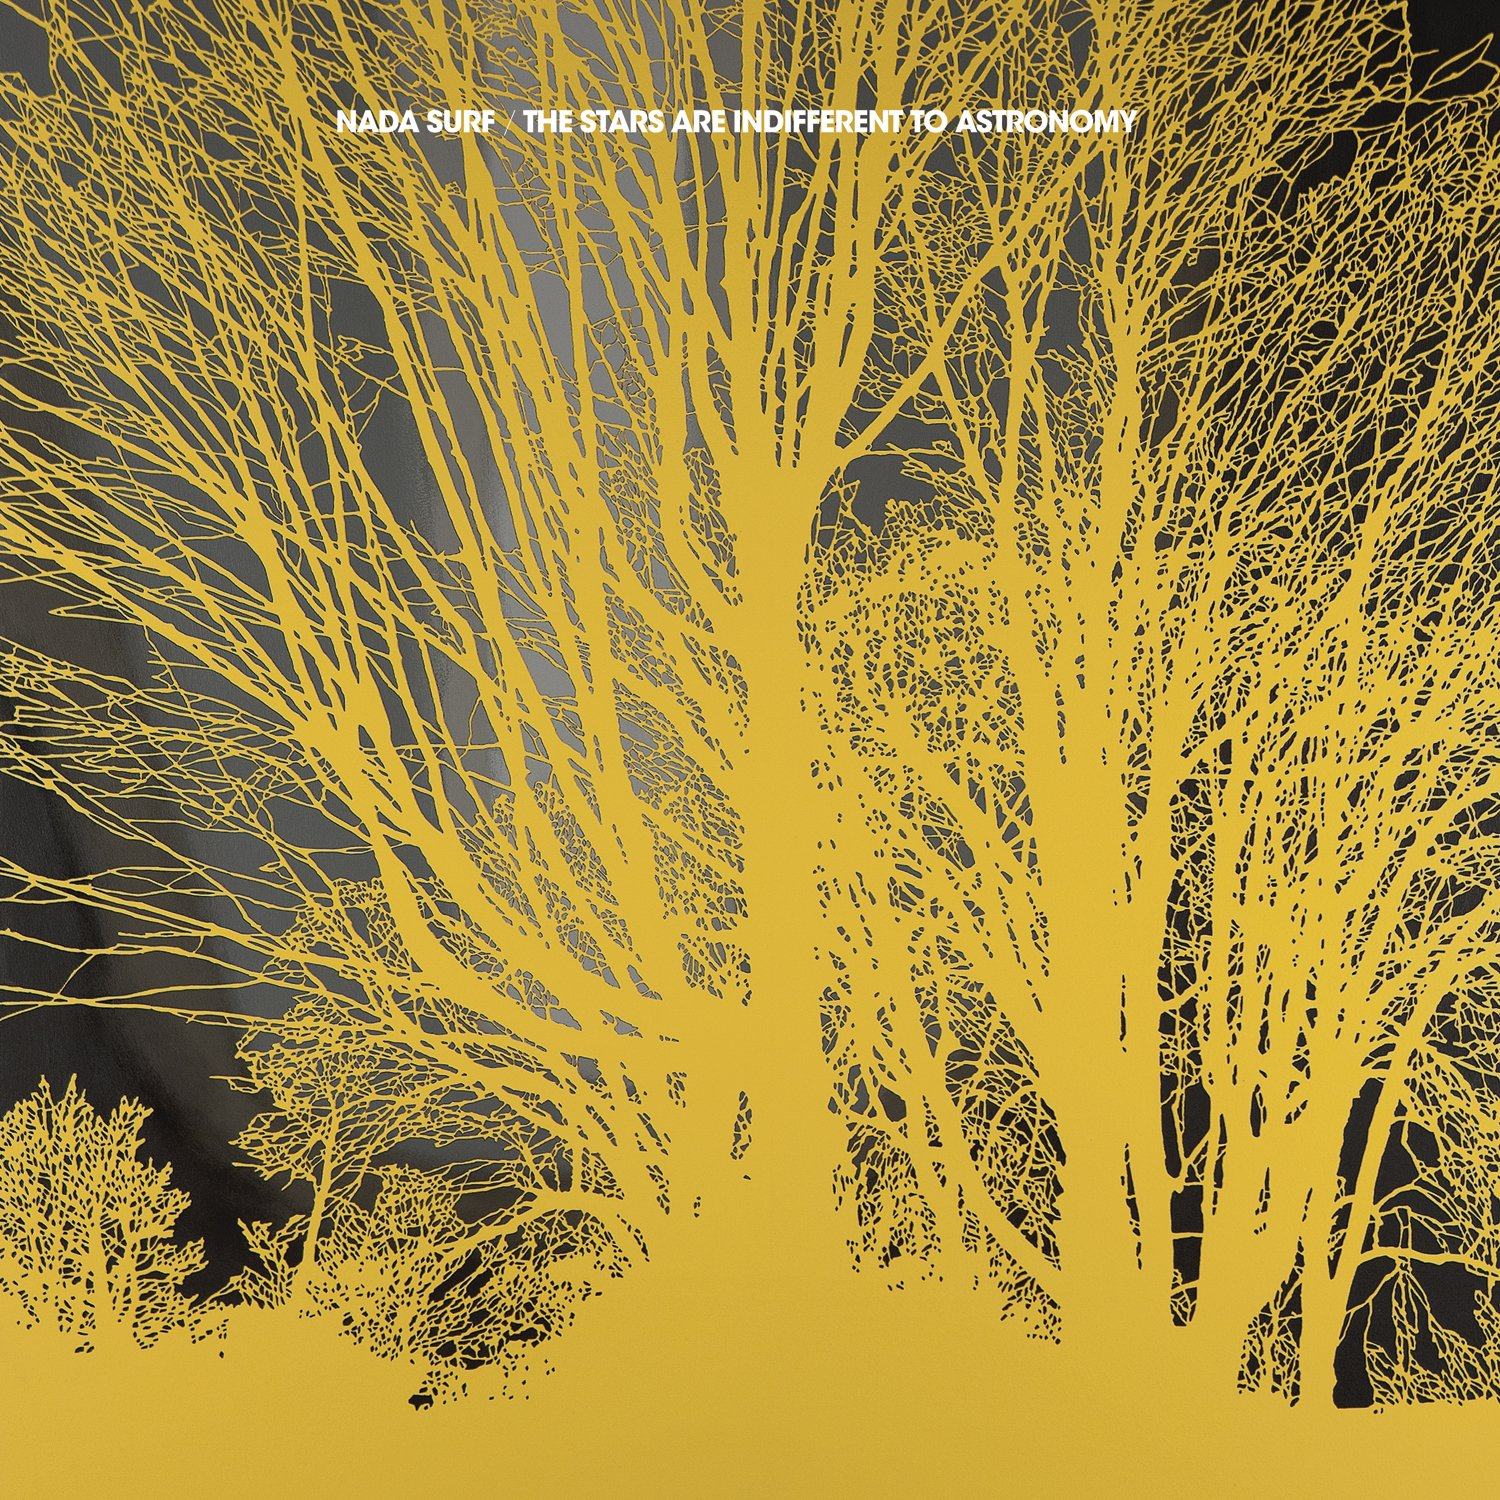 Nada Surf - The Stars Are Indifferent to Astronomy - Amazon.com Music